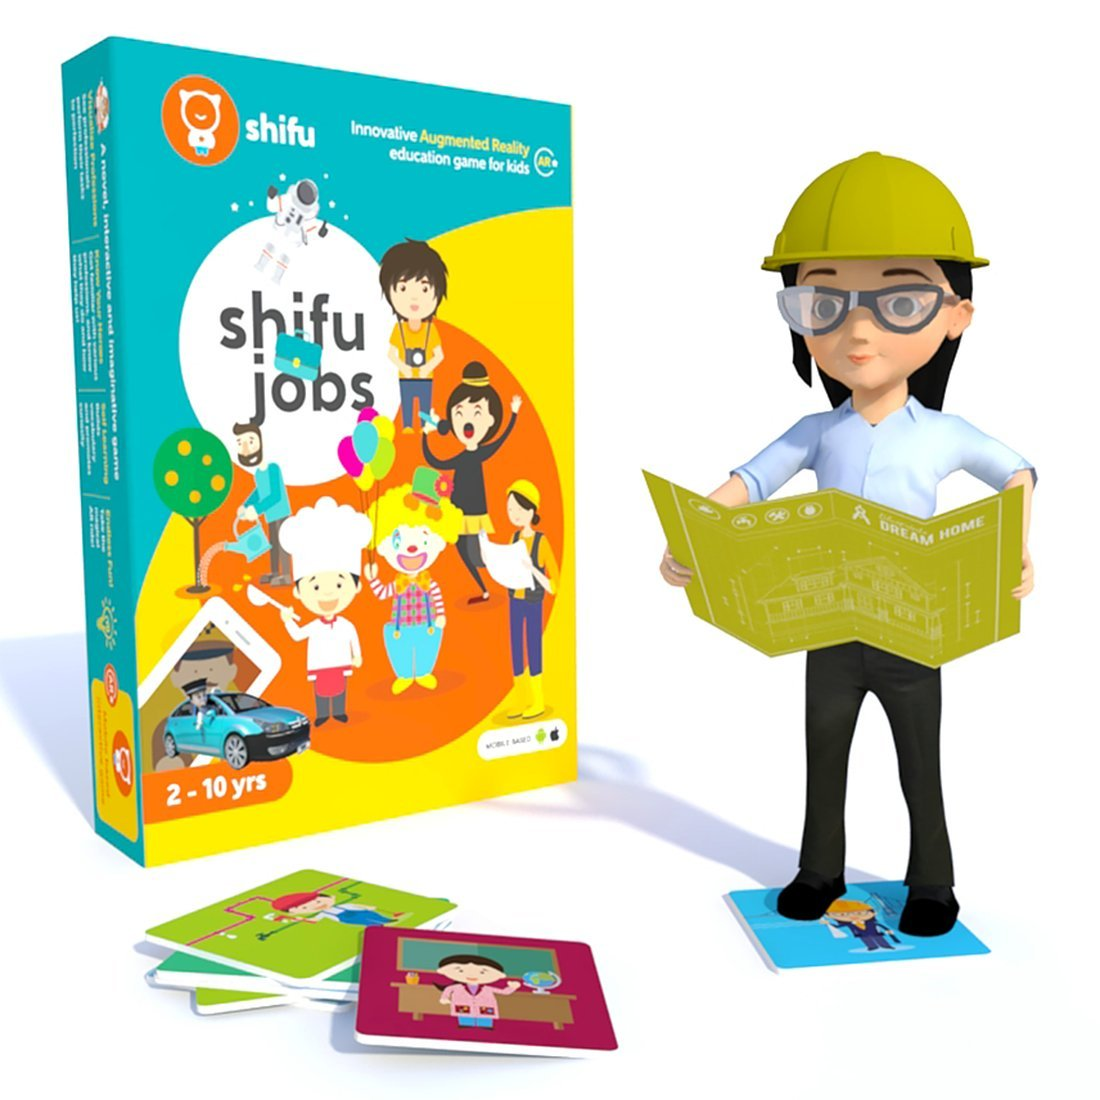 Shifu Professions - 4D Educational, Augmented Reality Based Game | 60 Community Workers Flashcards | STEM Learning Toy For Toddles, Preschool, Girls & Boys, 2 to 10 years | Ideal Gift for Kids